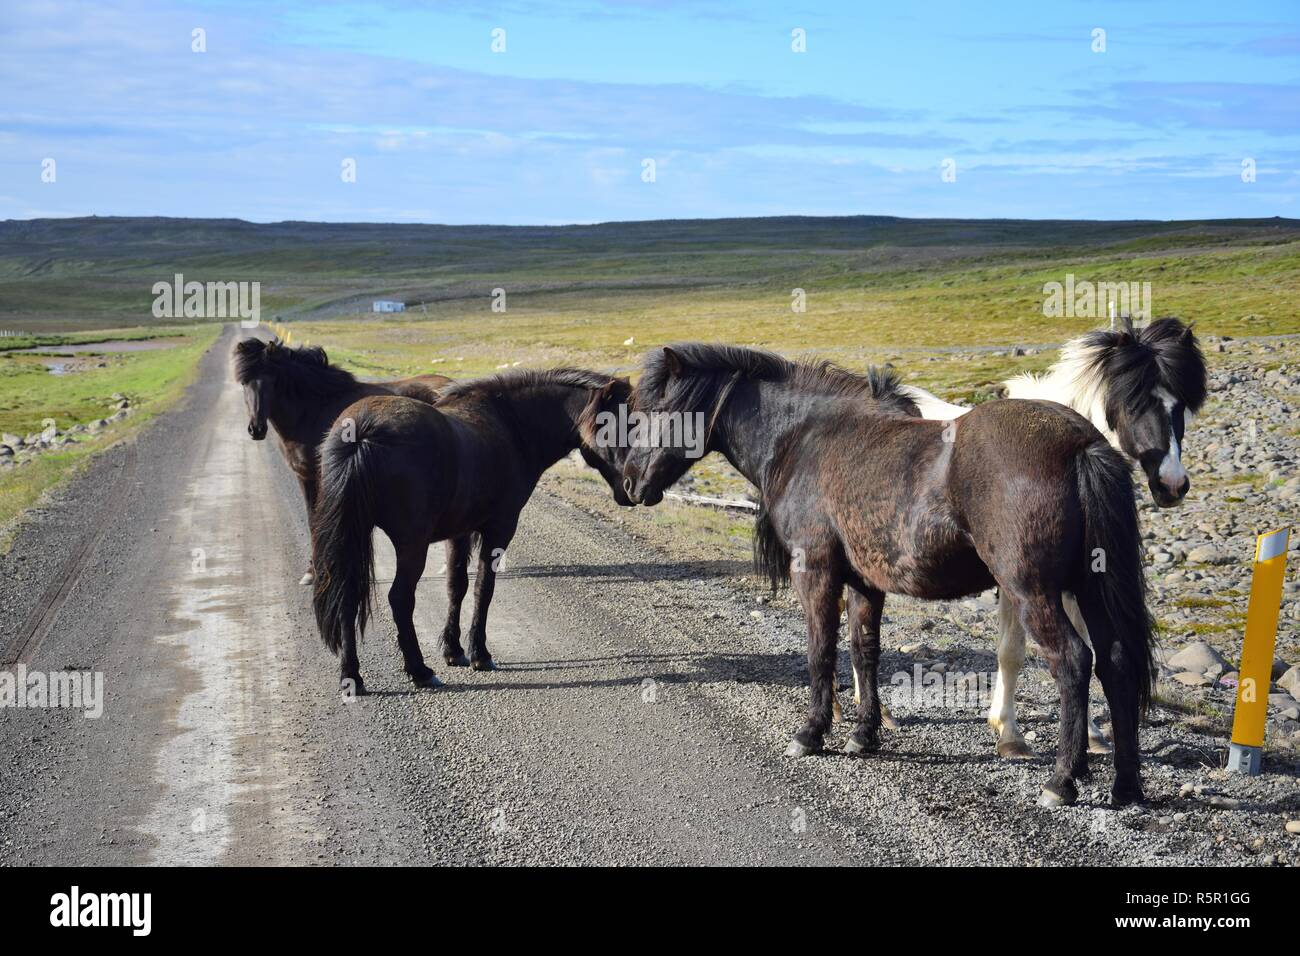 In remote parts of Iceland you may expect free running horses, even on the gravel road. Here is a group of horses standing on the road. - Stock Image